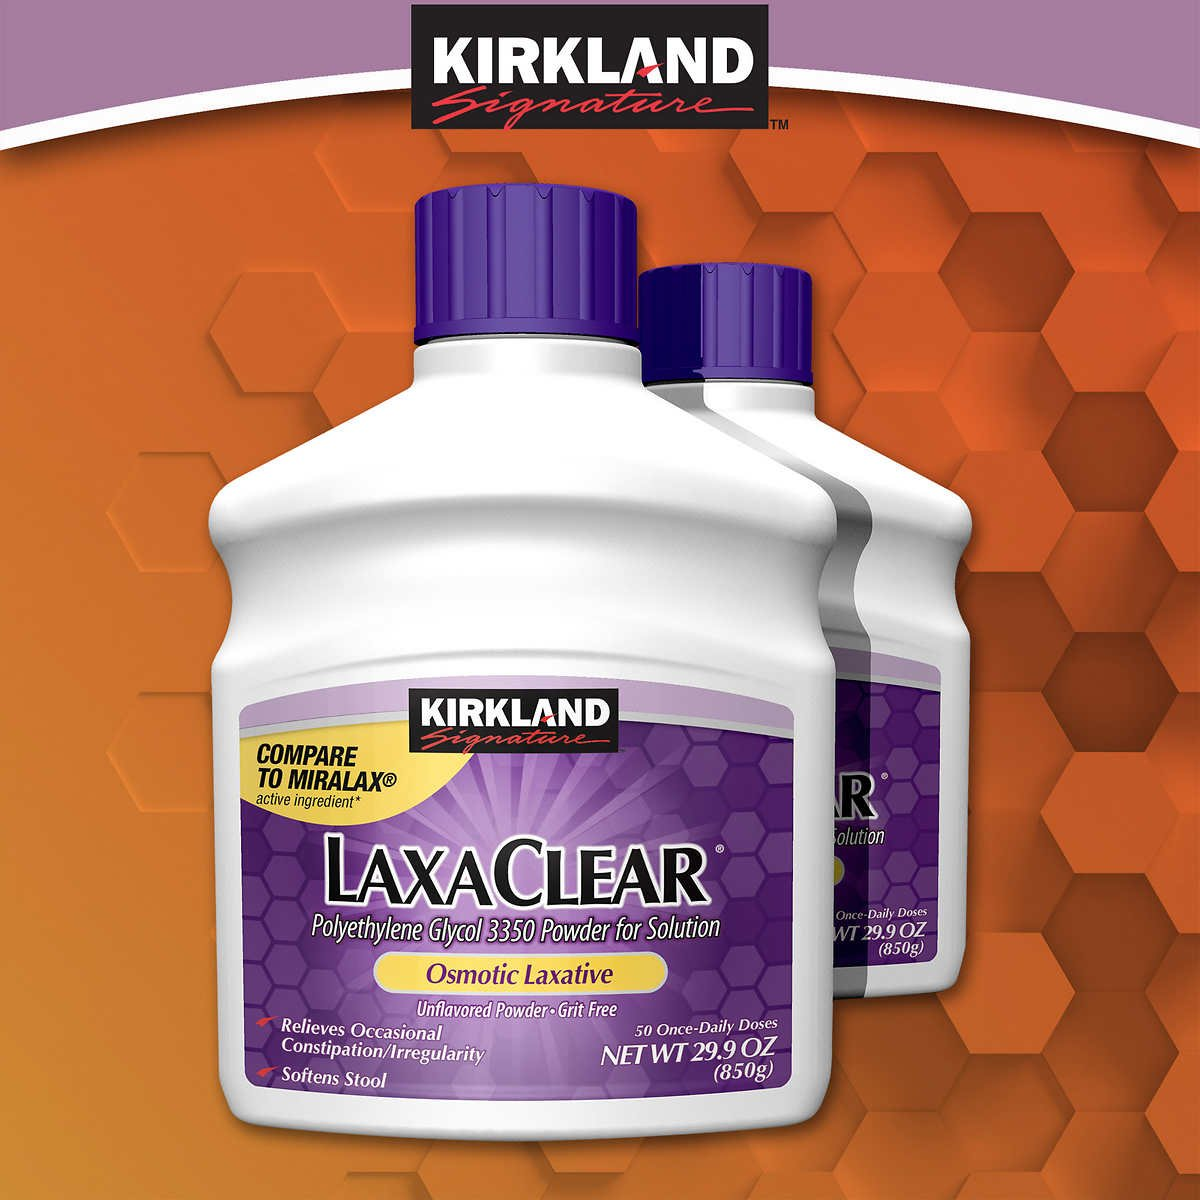 Kirkland LaxaClear, 90 Daily Doses, Polyethylene Glycol 3350 (6 Pack), Compare to Miralax Active Ingredient by Kirkland Signature